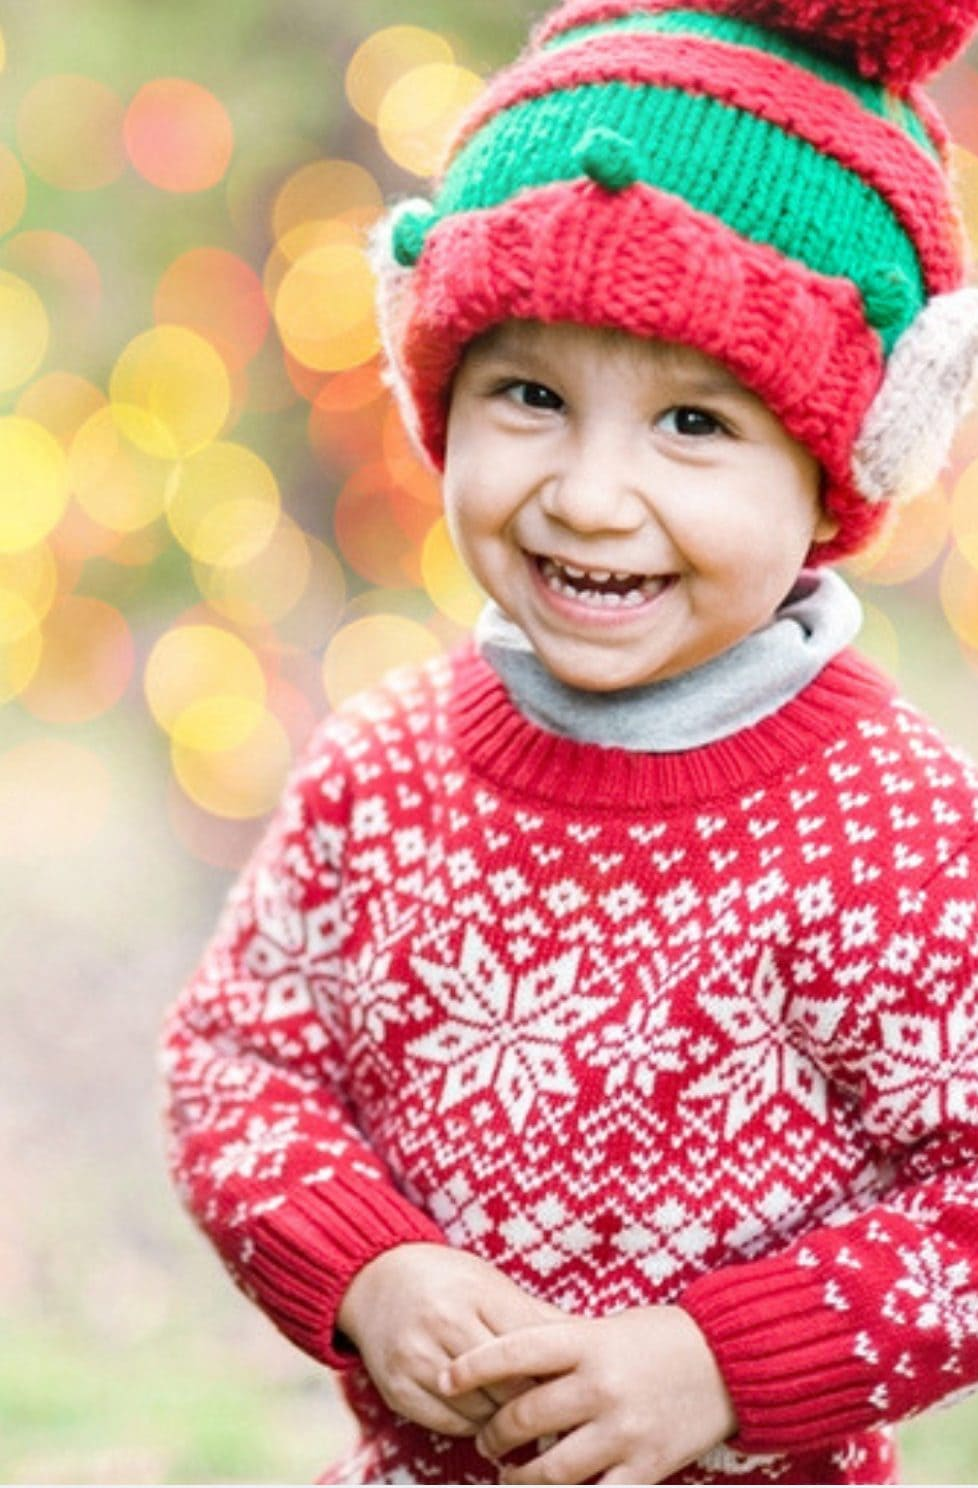 Christmas knits for kids